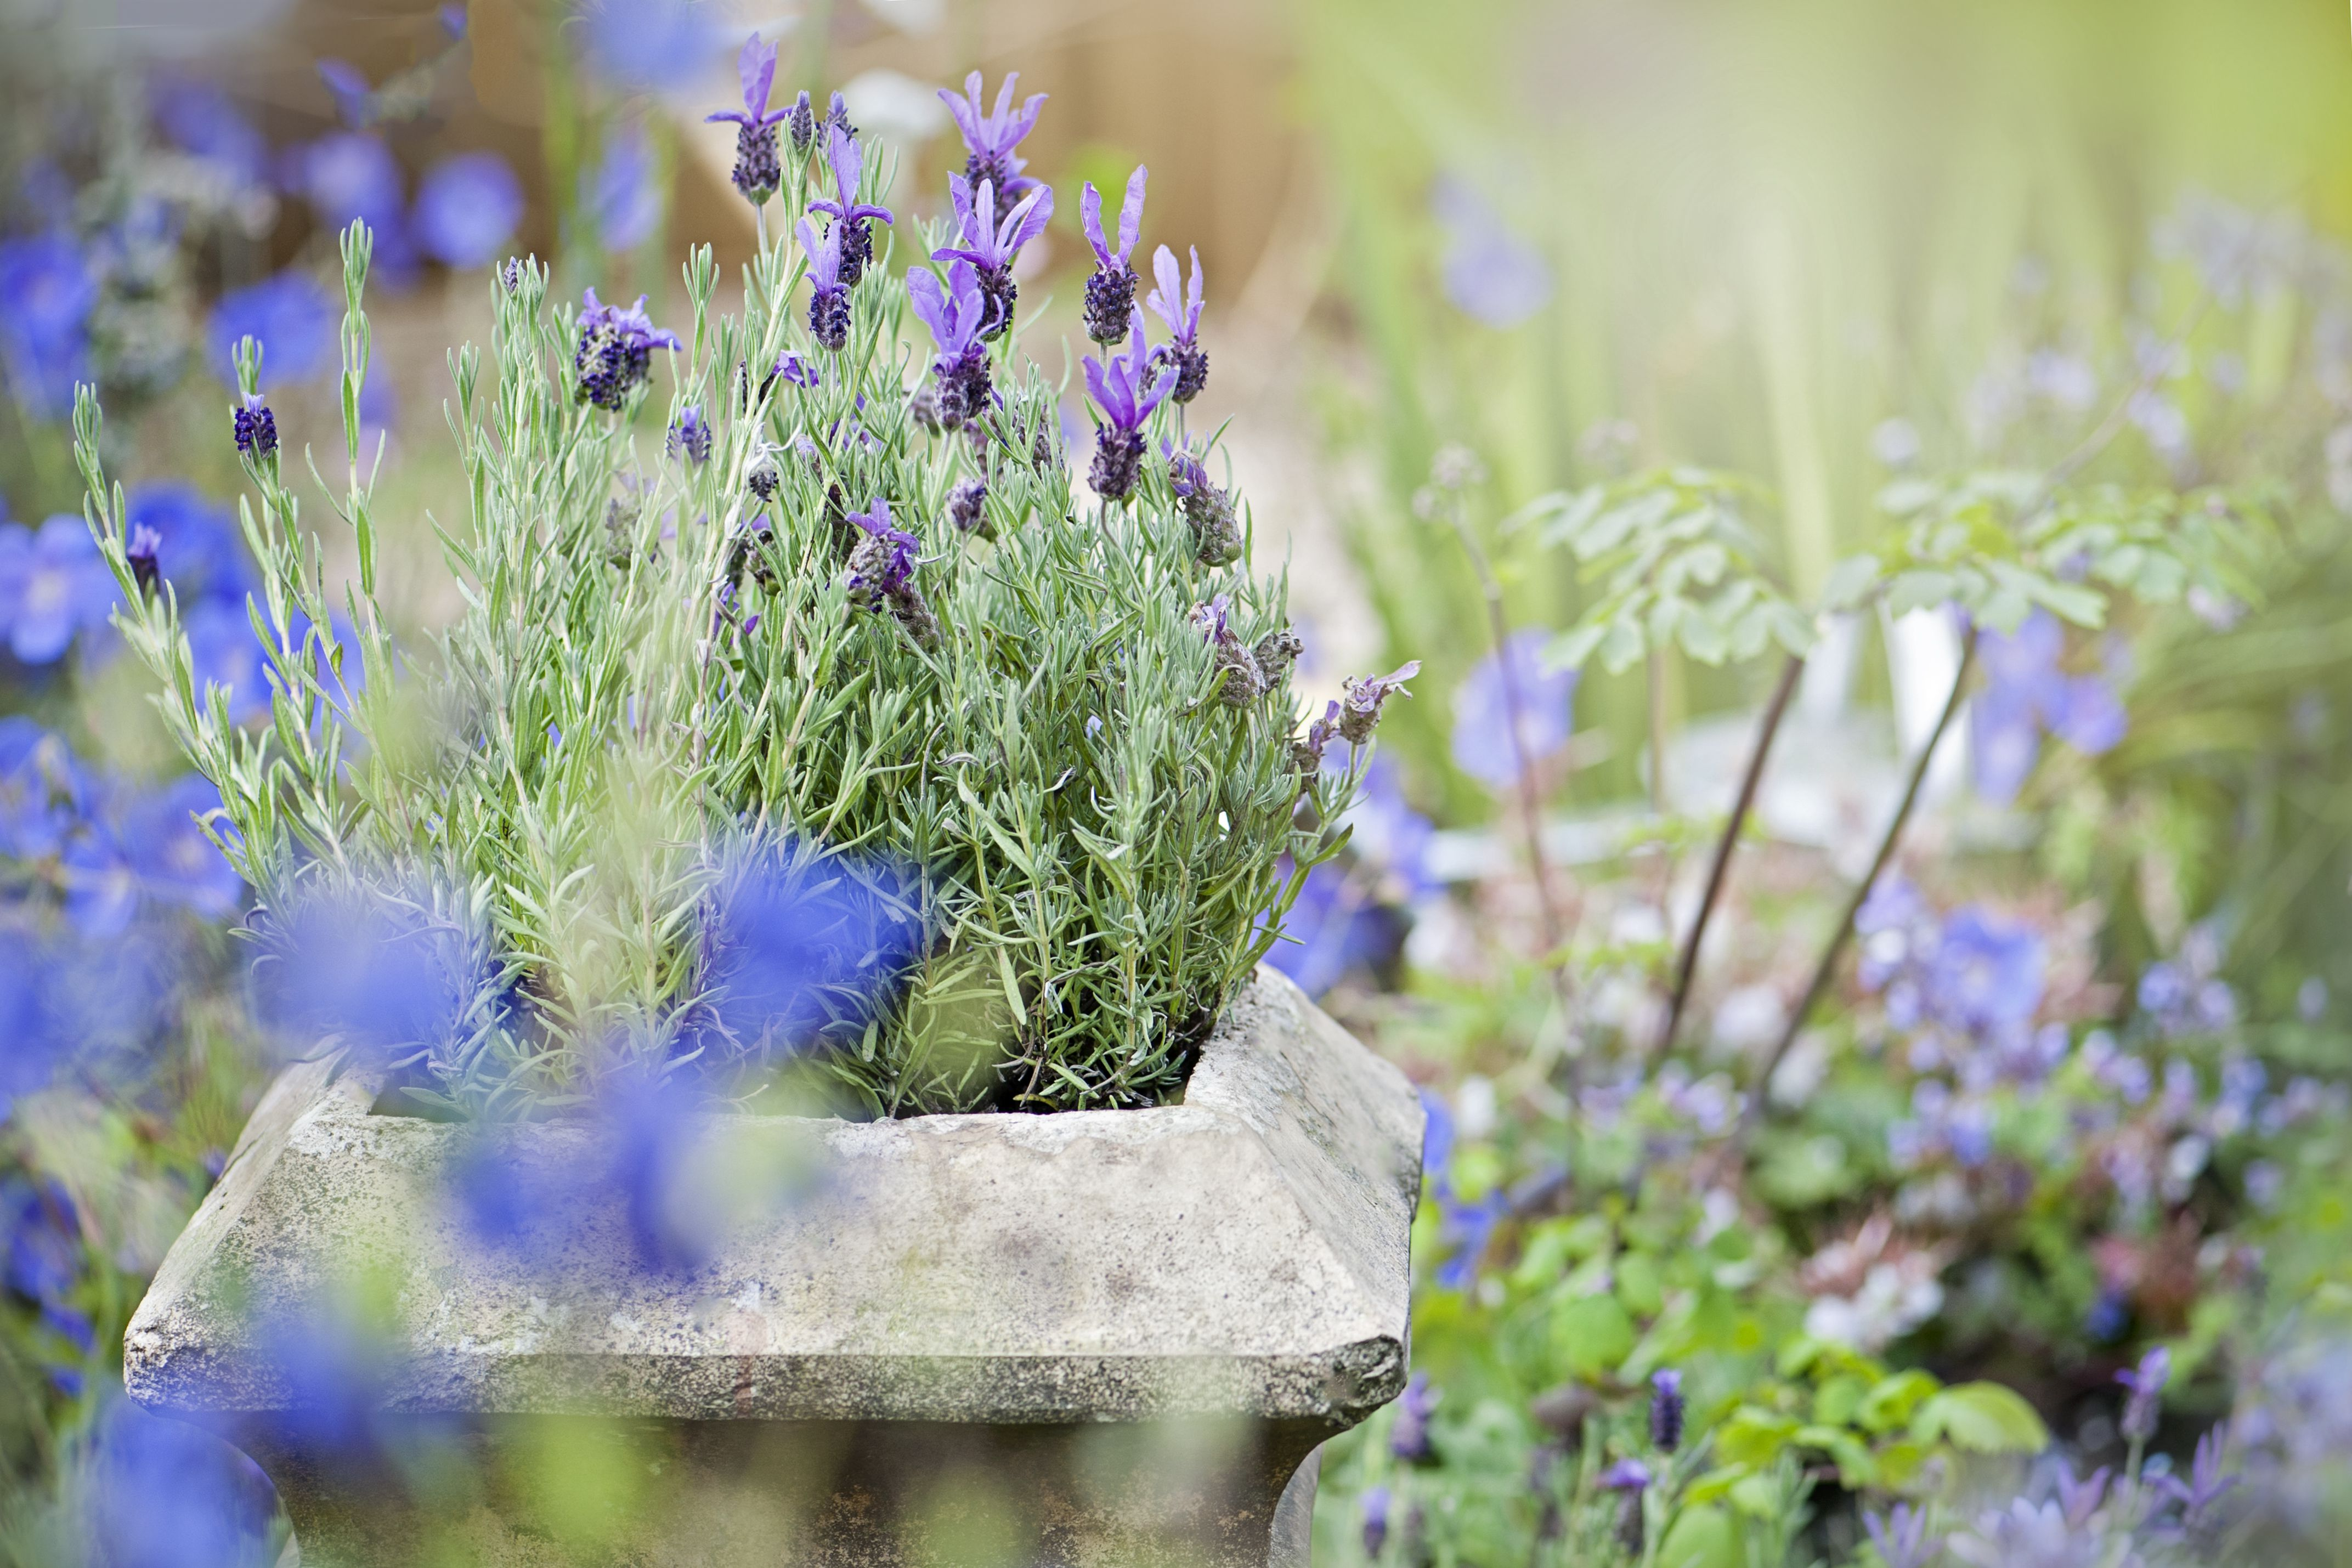 Close Up Image Of A Stone Garden Planter Or Container With Scented Lavender Flowers In